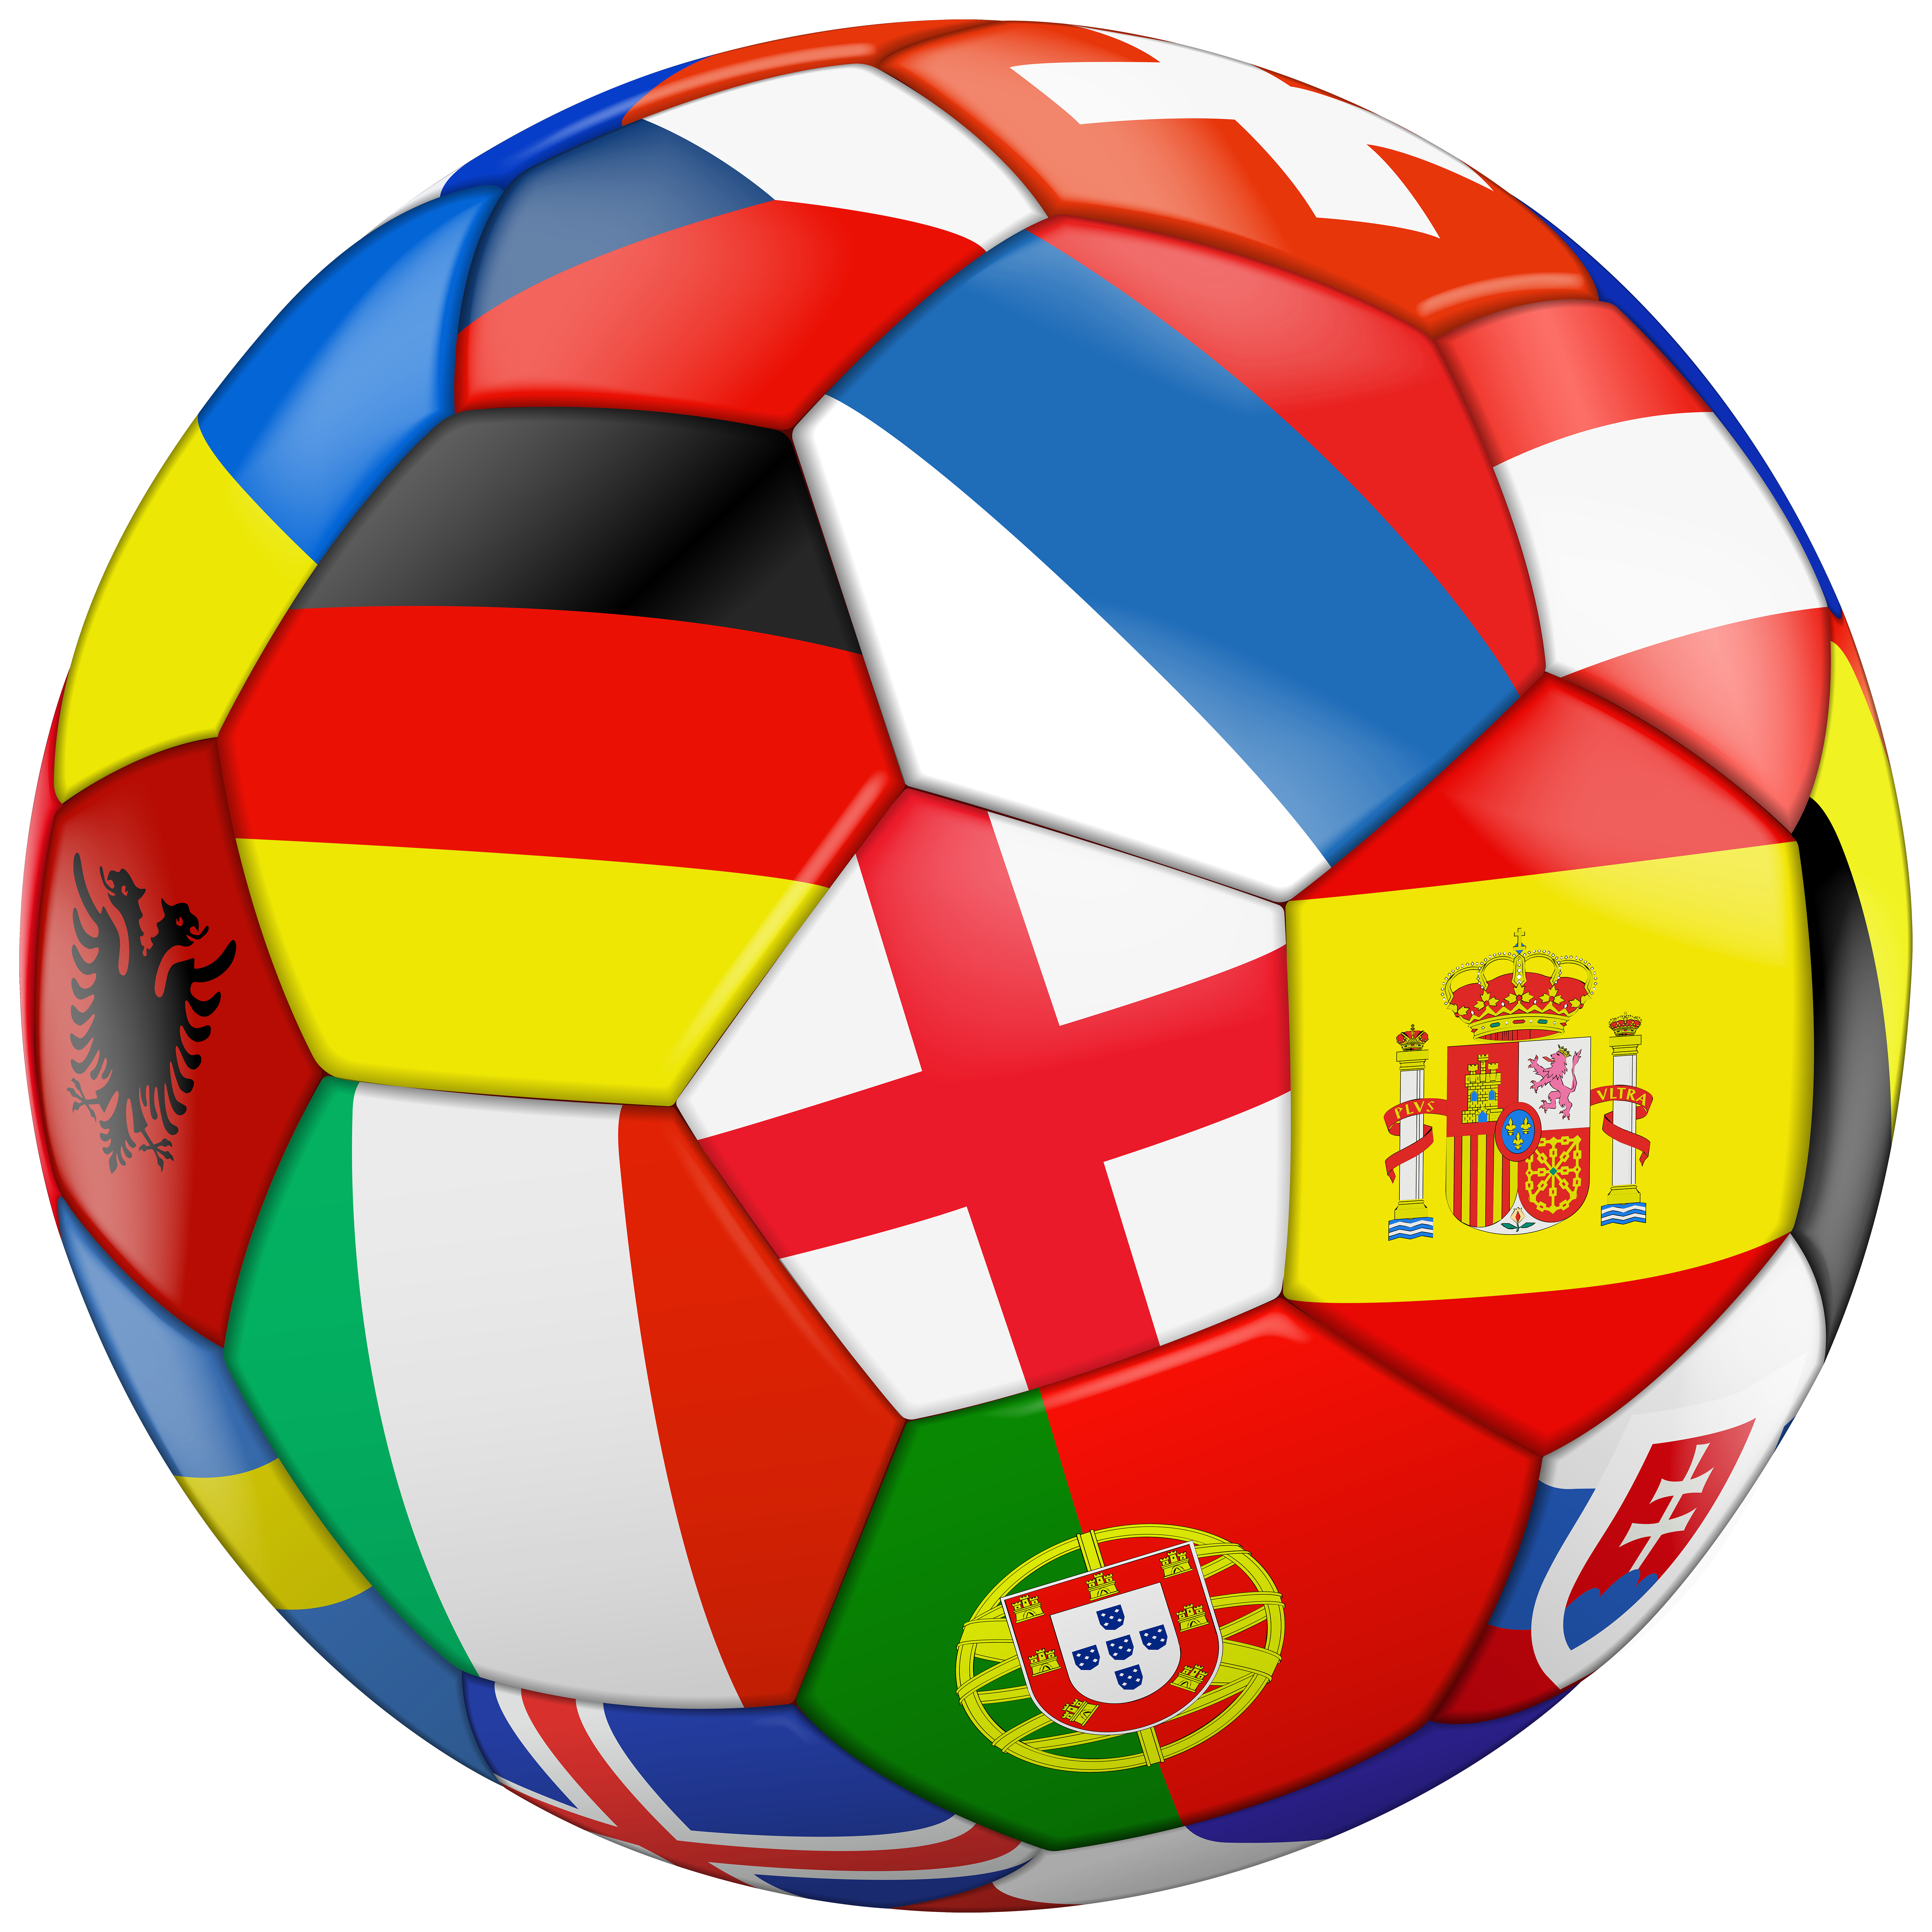 Football image png. With flags transparent clip